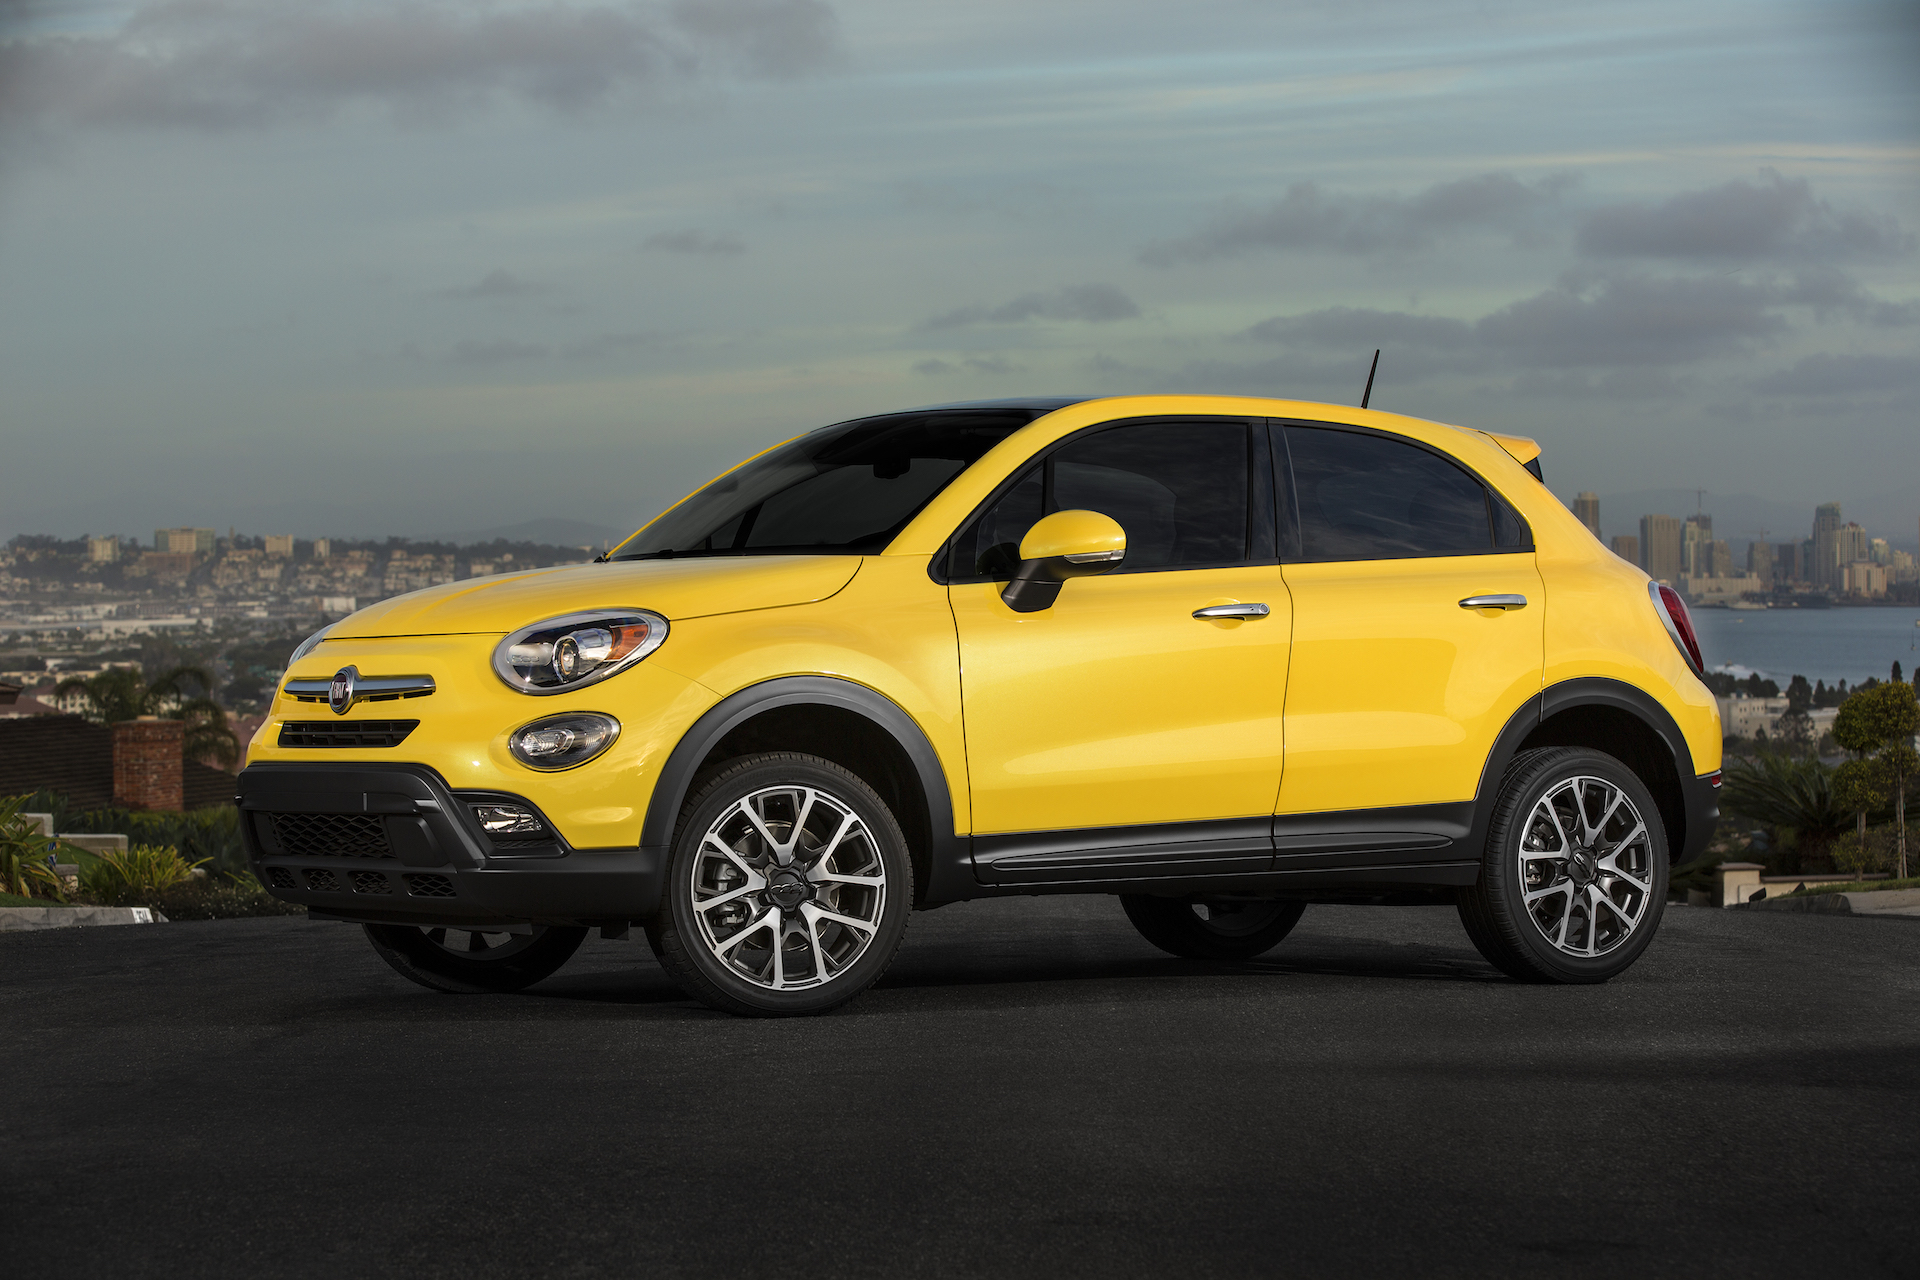 Chrysler crossfire reviews research new used models - 2016 Fiat 500x First Drive Video